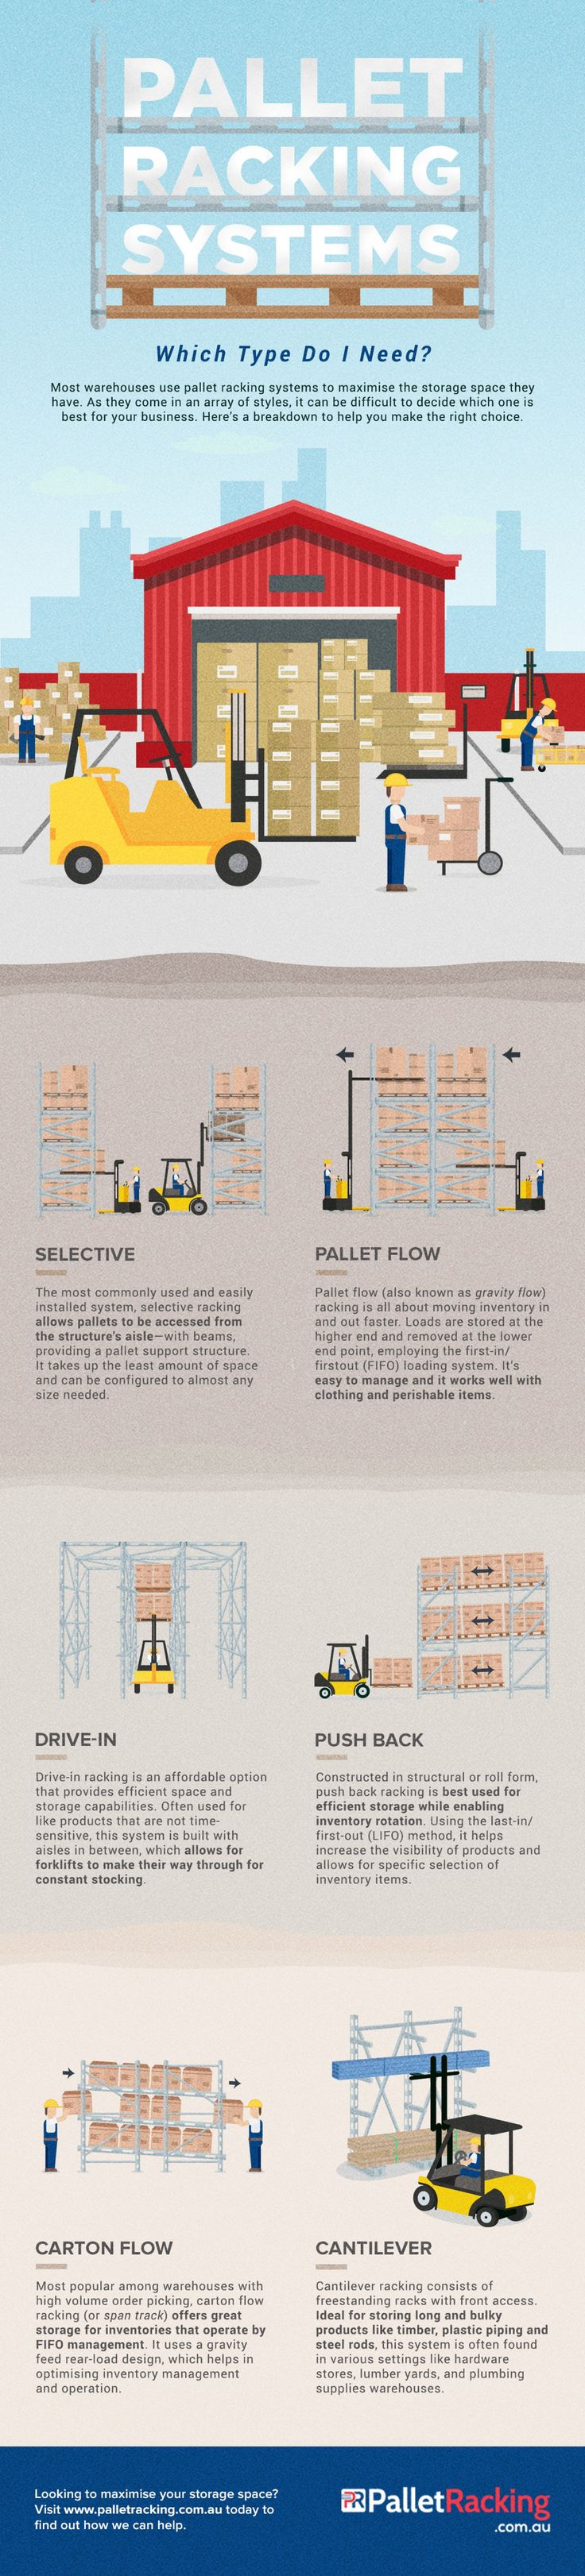 Pallet Racking Systems | Which Type Do I Need? Infographic